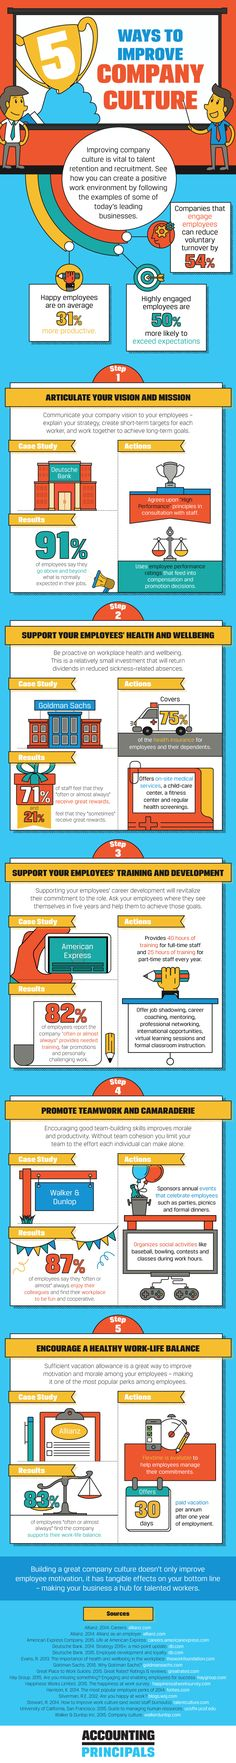 5 Ways to Improve Company Culture #infographic #business #CompanyCulture